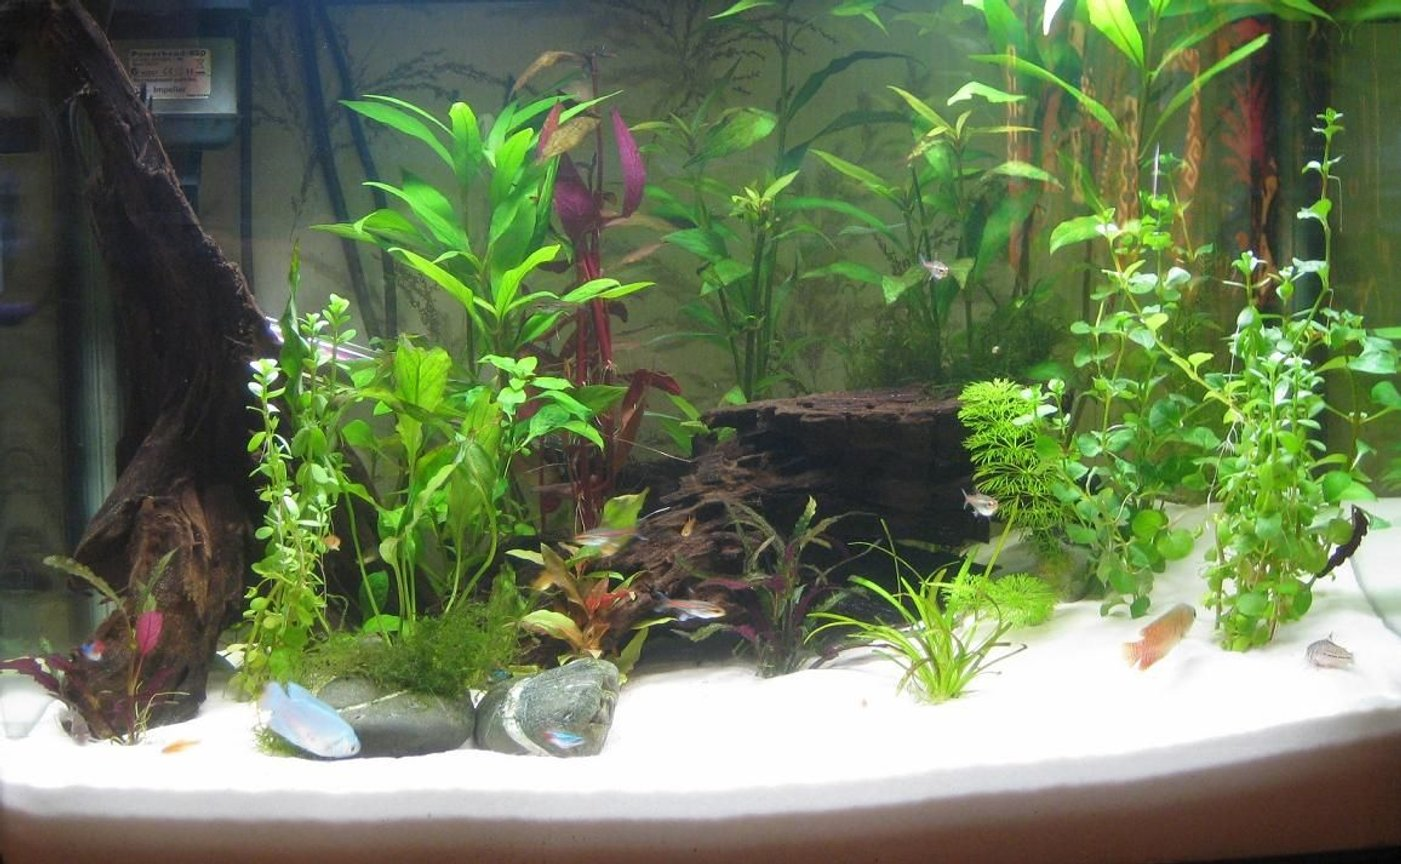 planted tank (mostly live plants and fish) - 90 litre planted tank 7 Ember tetras 5 Glowlight tetras 4 Neon tetras 2 Dwarf gouramis 3 Julii catfish 1 Upside-don catfish Ambulia, Borneo sword, Ludwigia, Hygrophilia, Dwarf Sagittarius, Baby's tears, Java Moss, Lysamachia, Alteranthera Rosaefolia Driftwood, white silica, JBL substrate